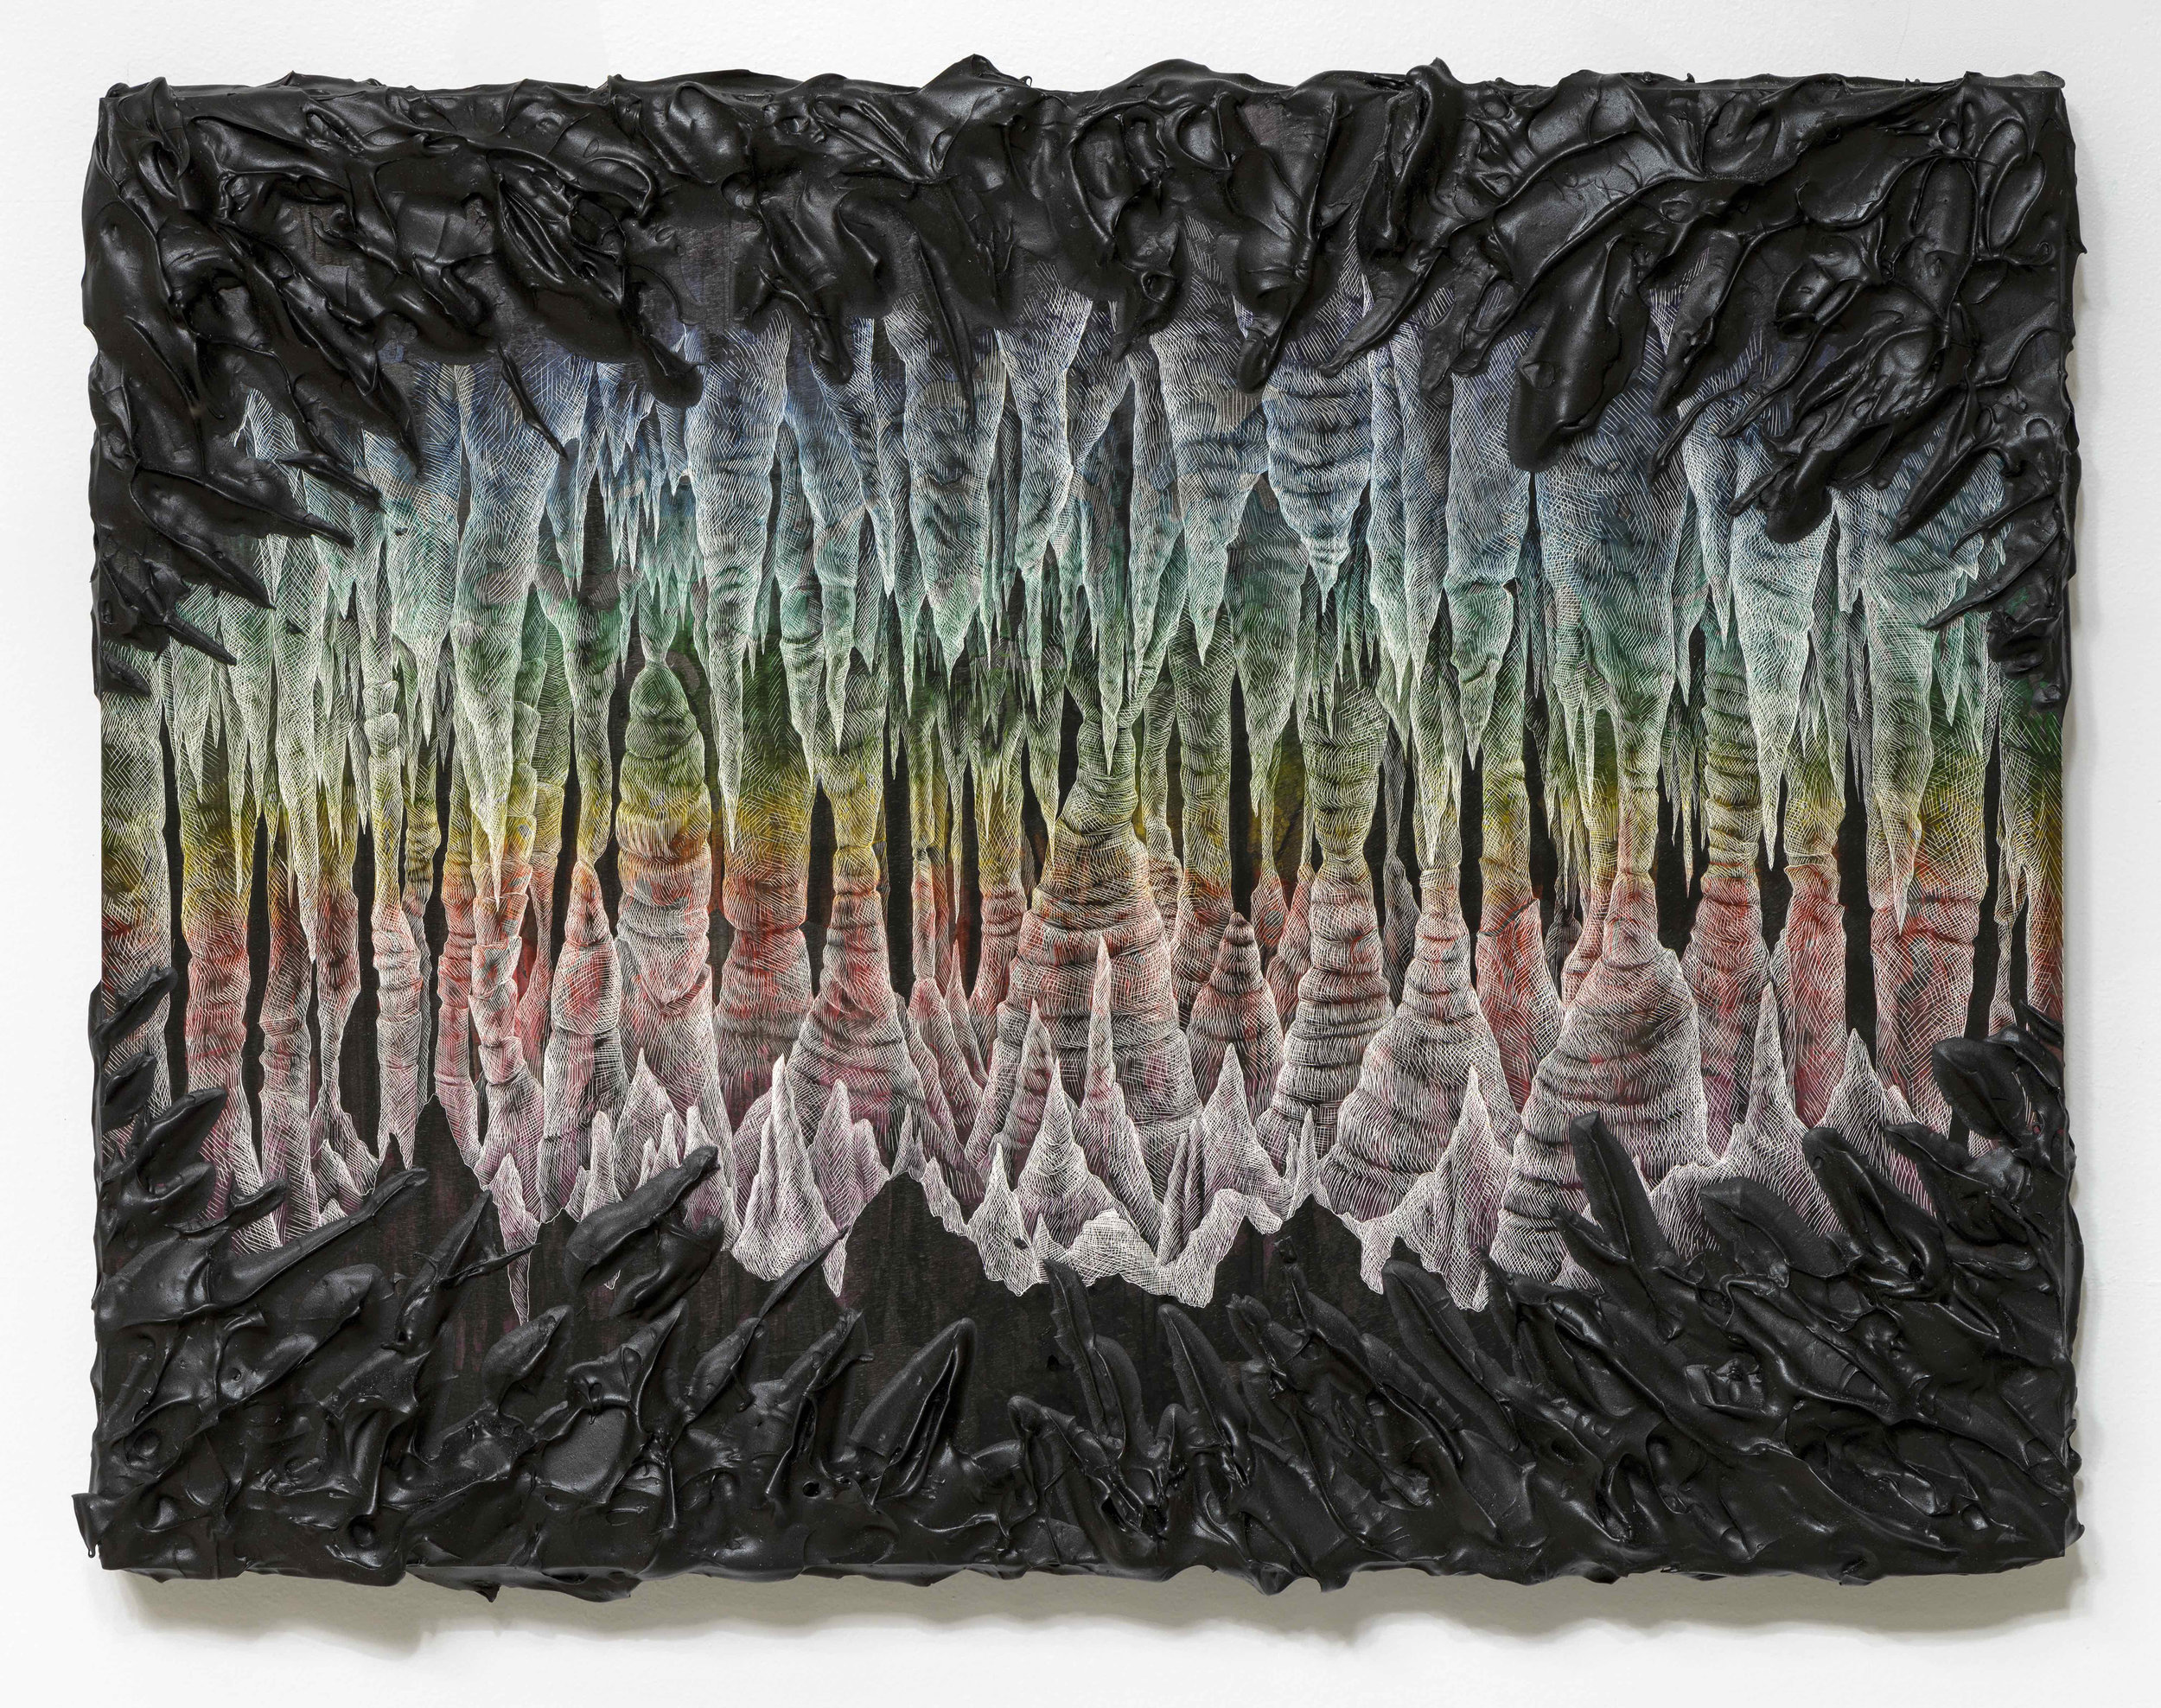 Kelly Berg  Grotto Aurora,  2016 Acrylic, Ink, and scratchboard technique on Clayboard 18 x 24 inches